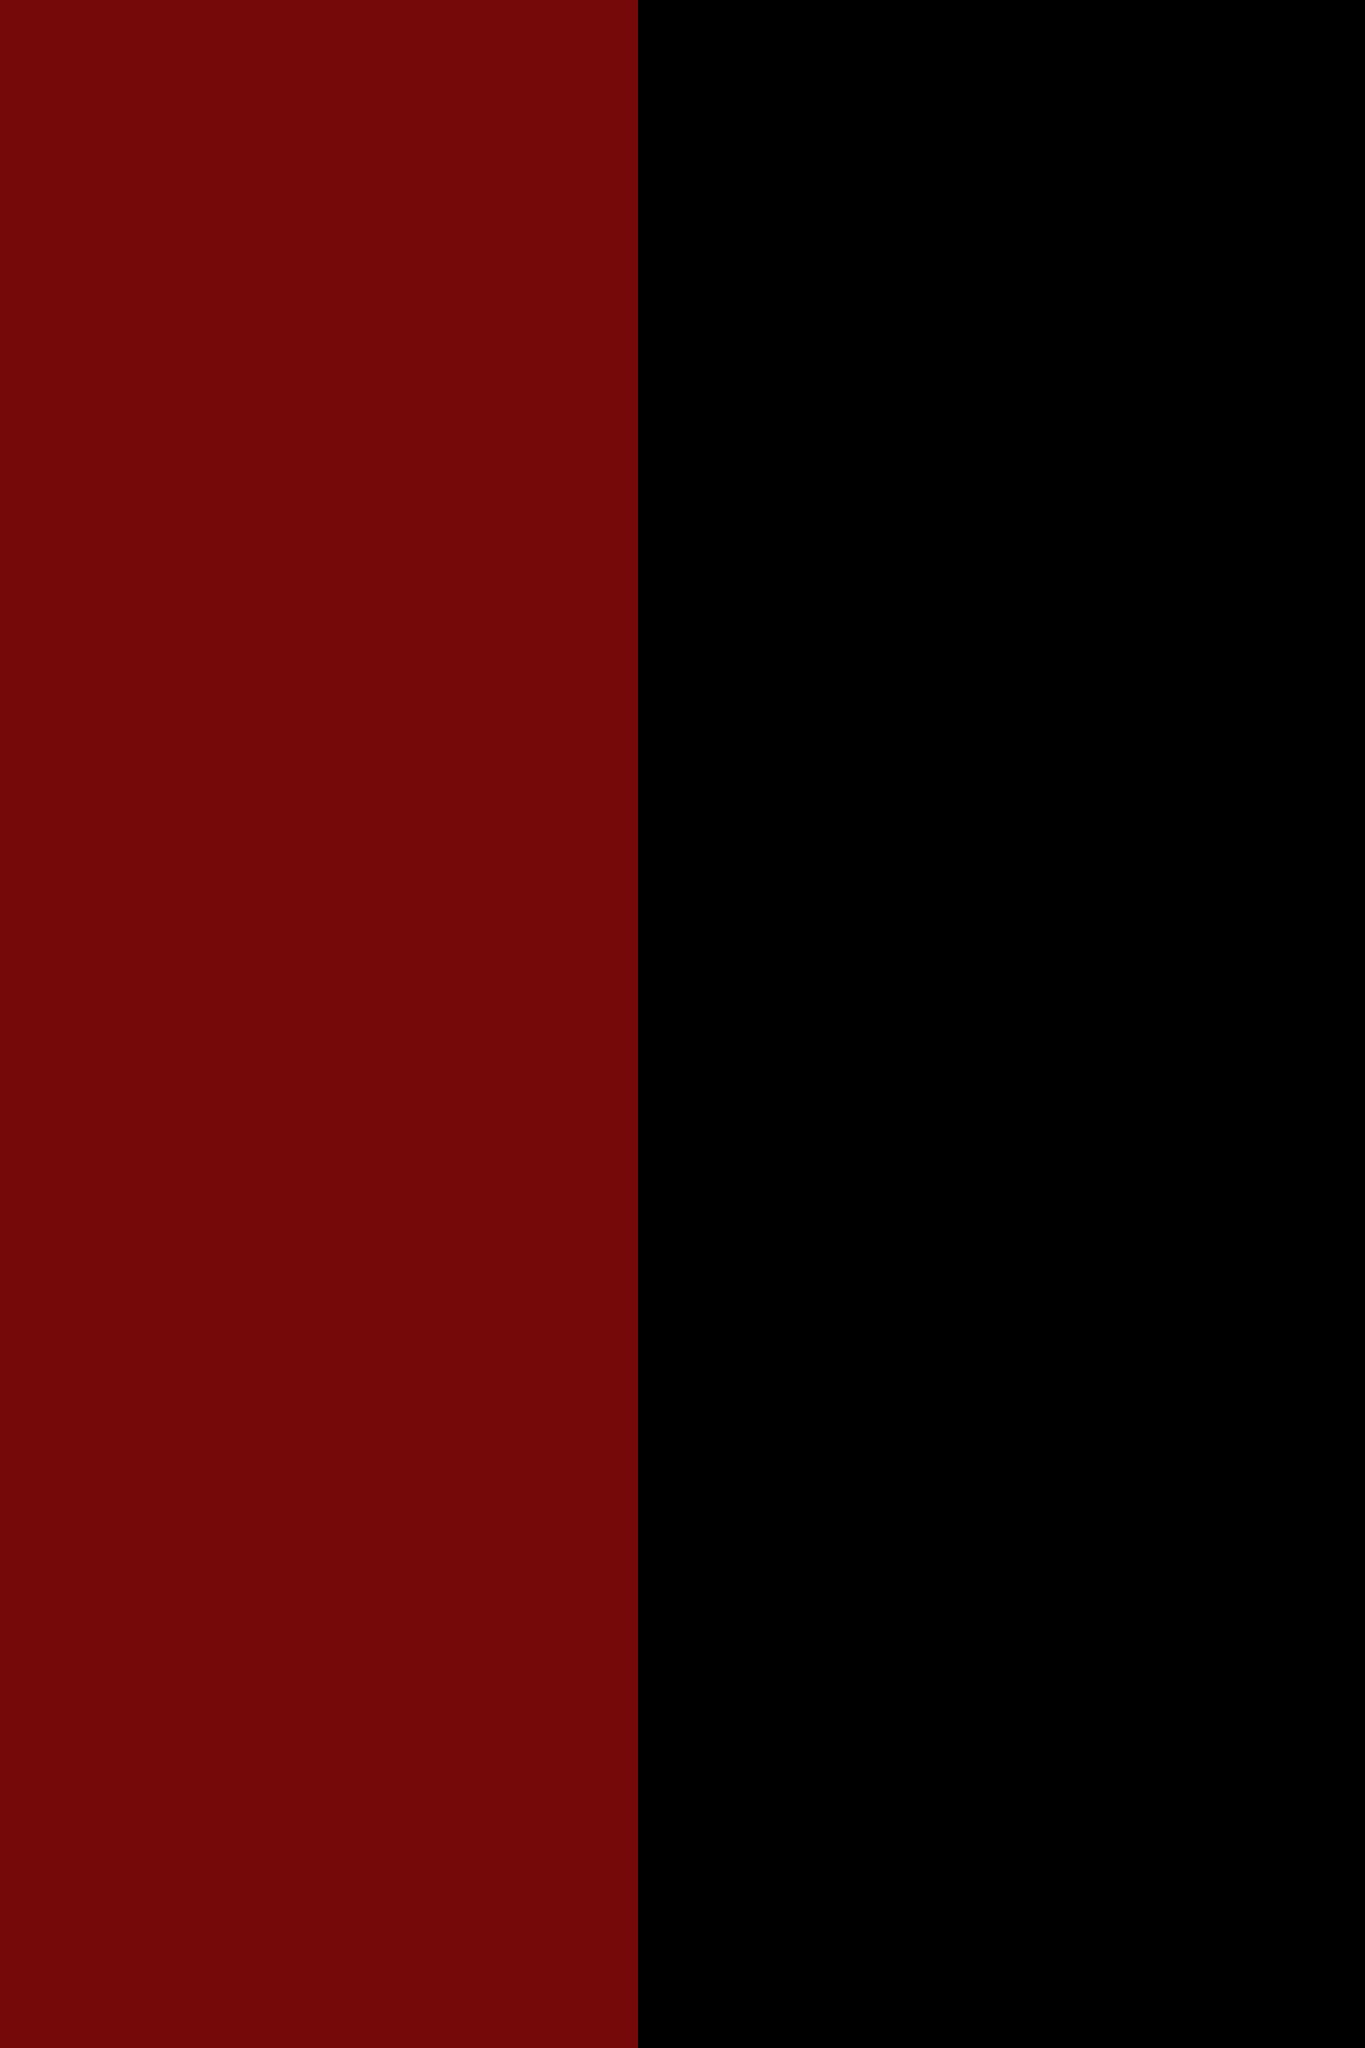 Simple AC Milan wallpaper for the iPhone [may work for other devices as  well] …